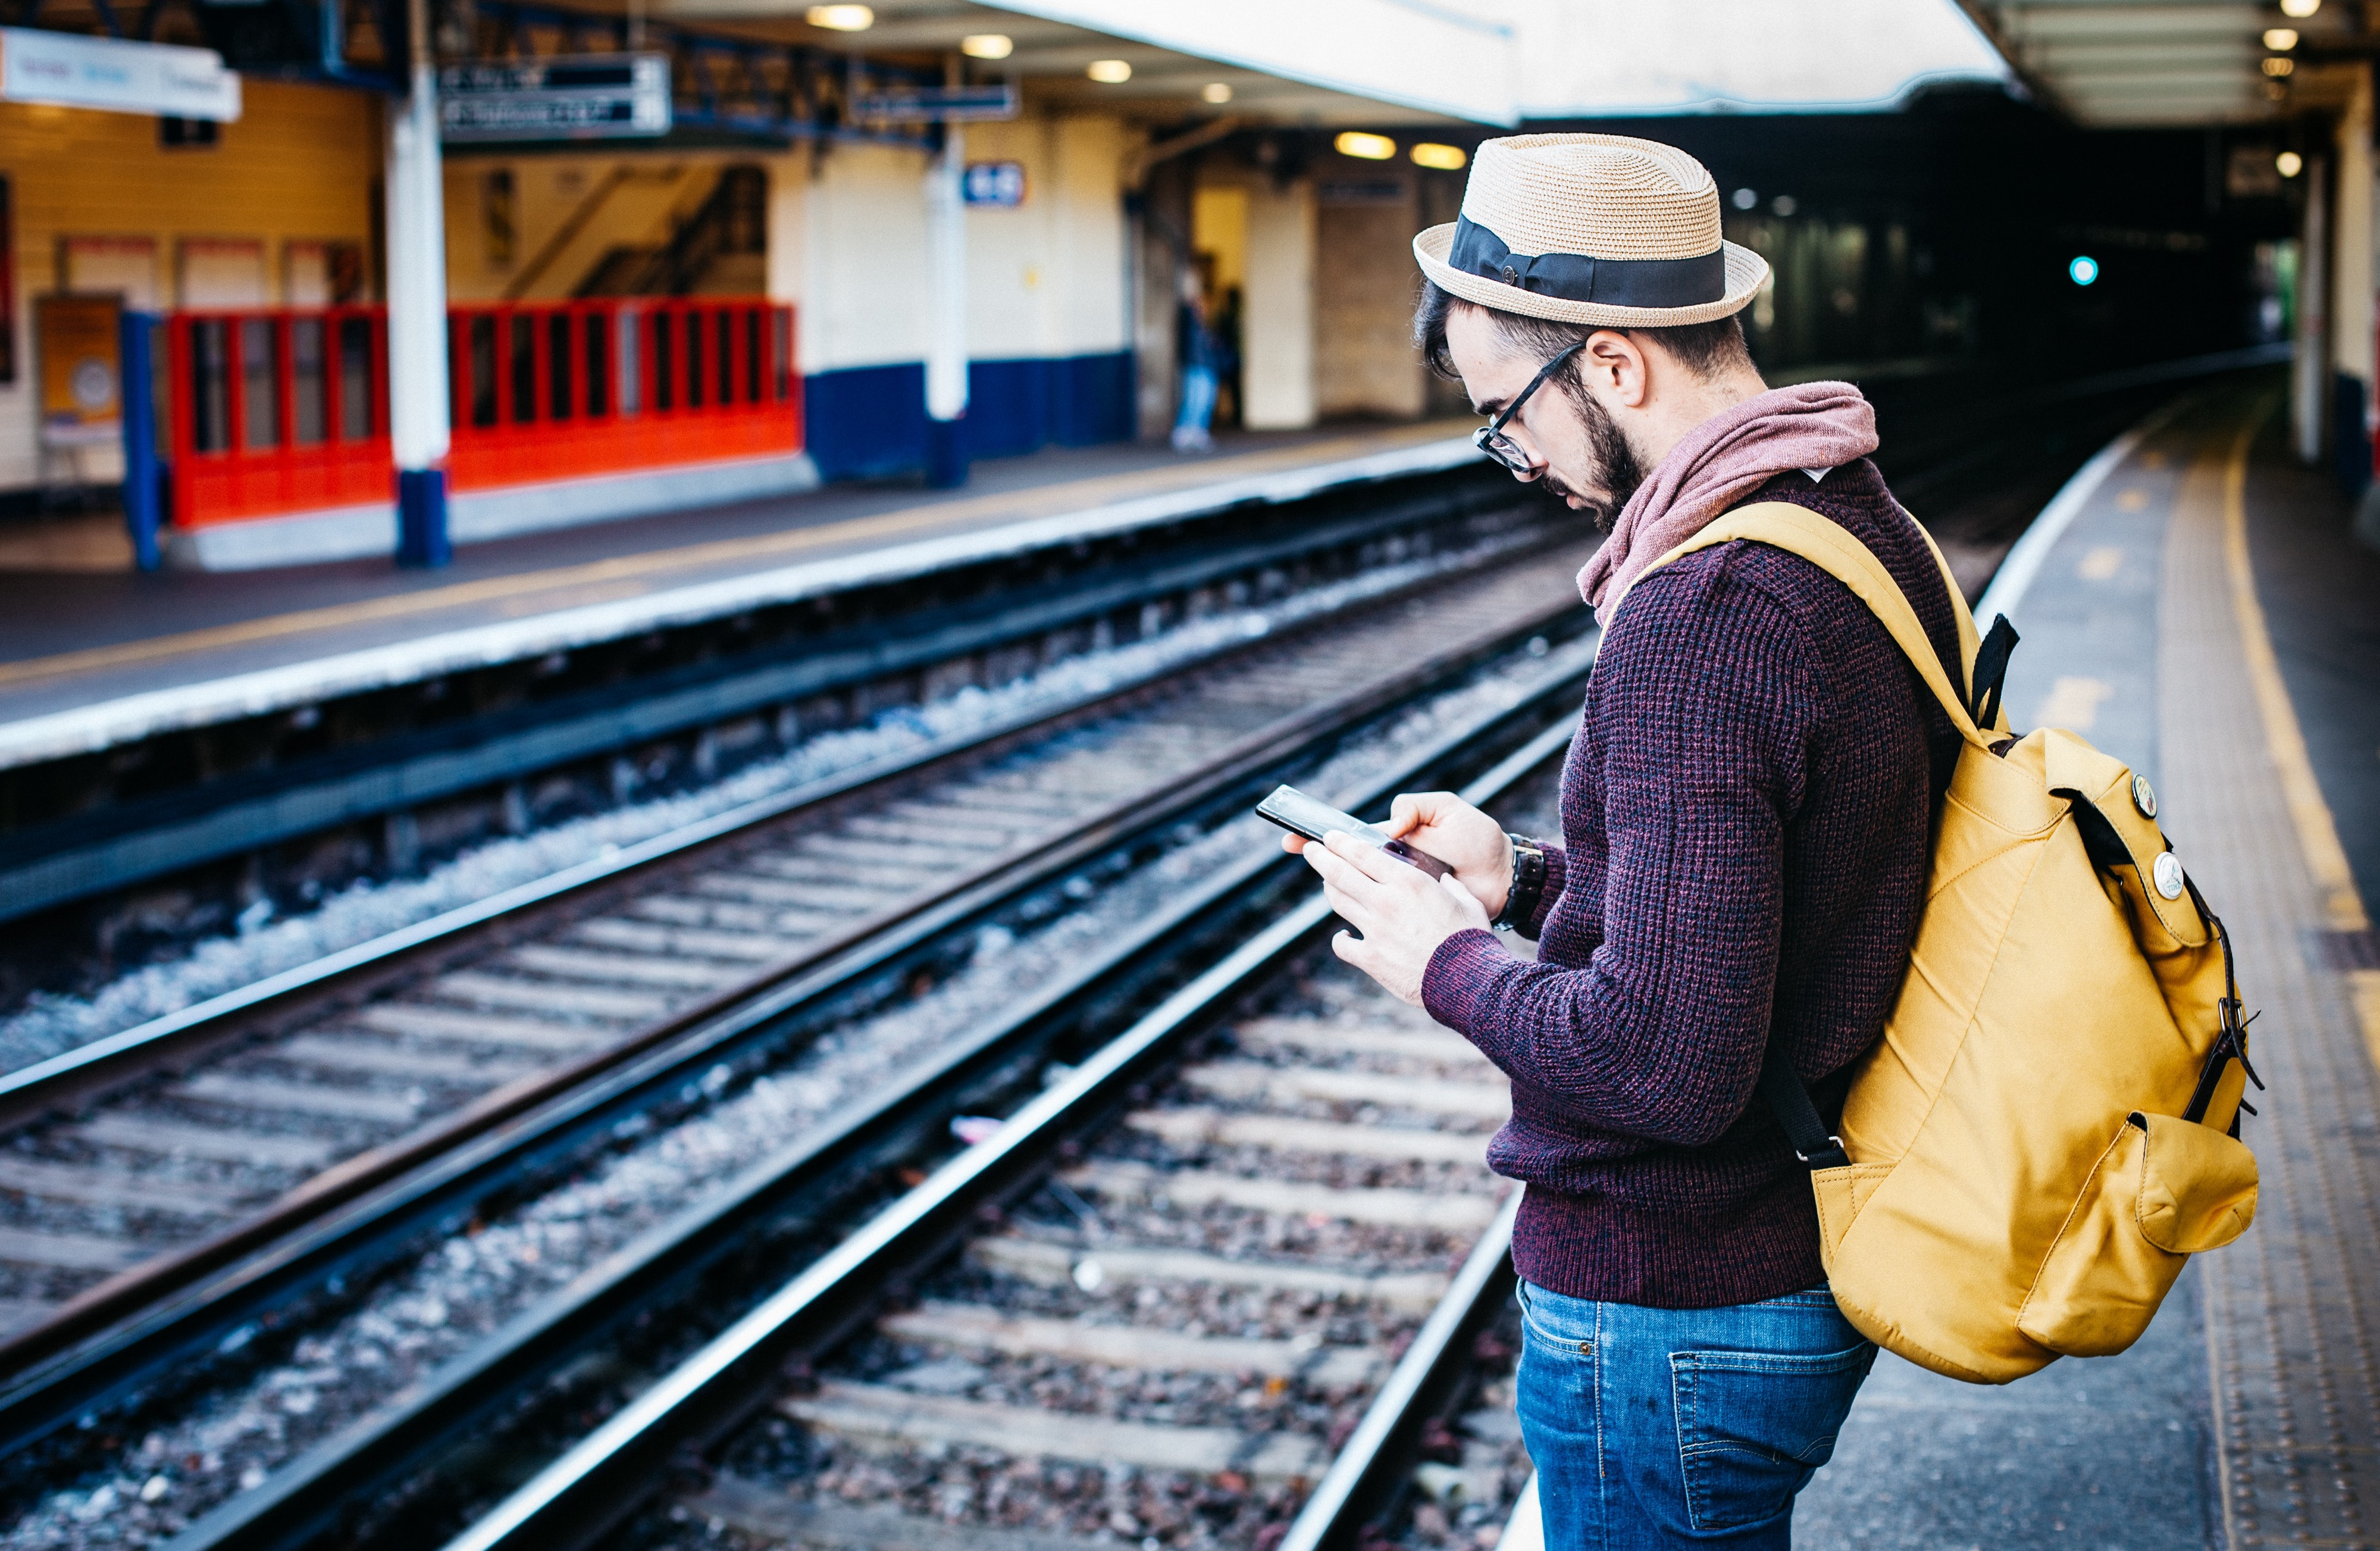 The picture shows a person standing in a station, looking at his smartphone.